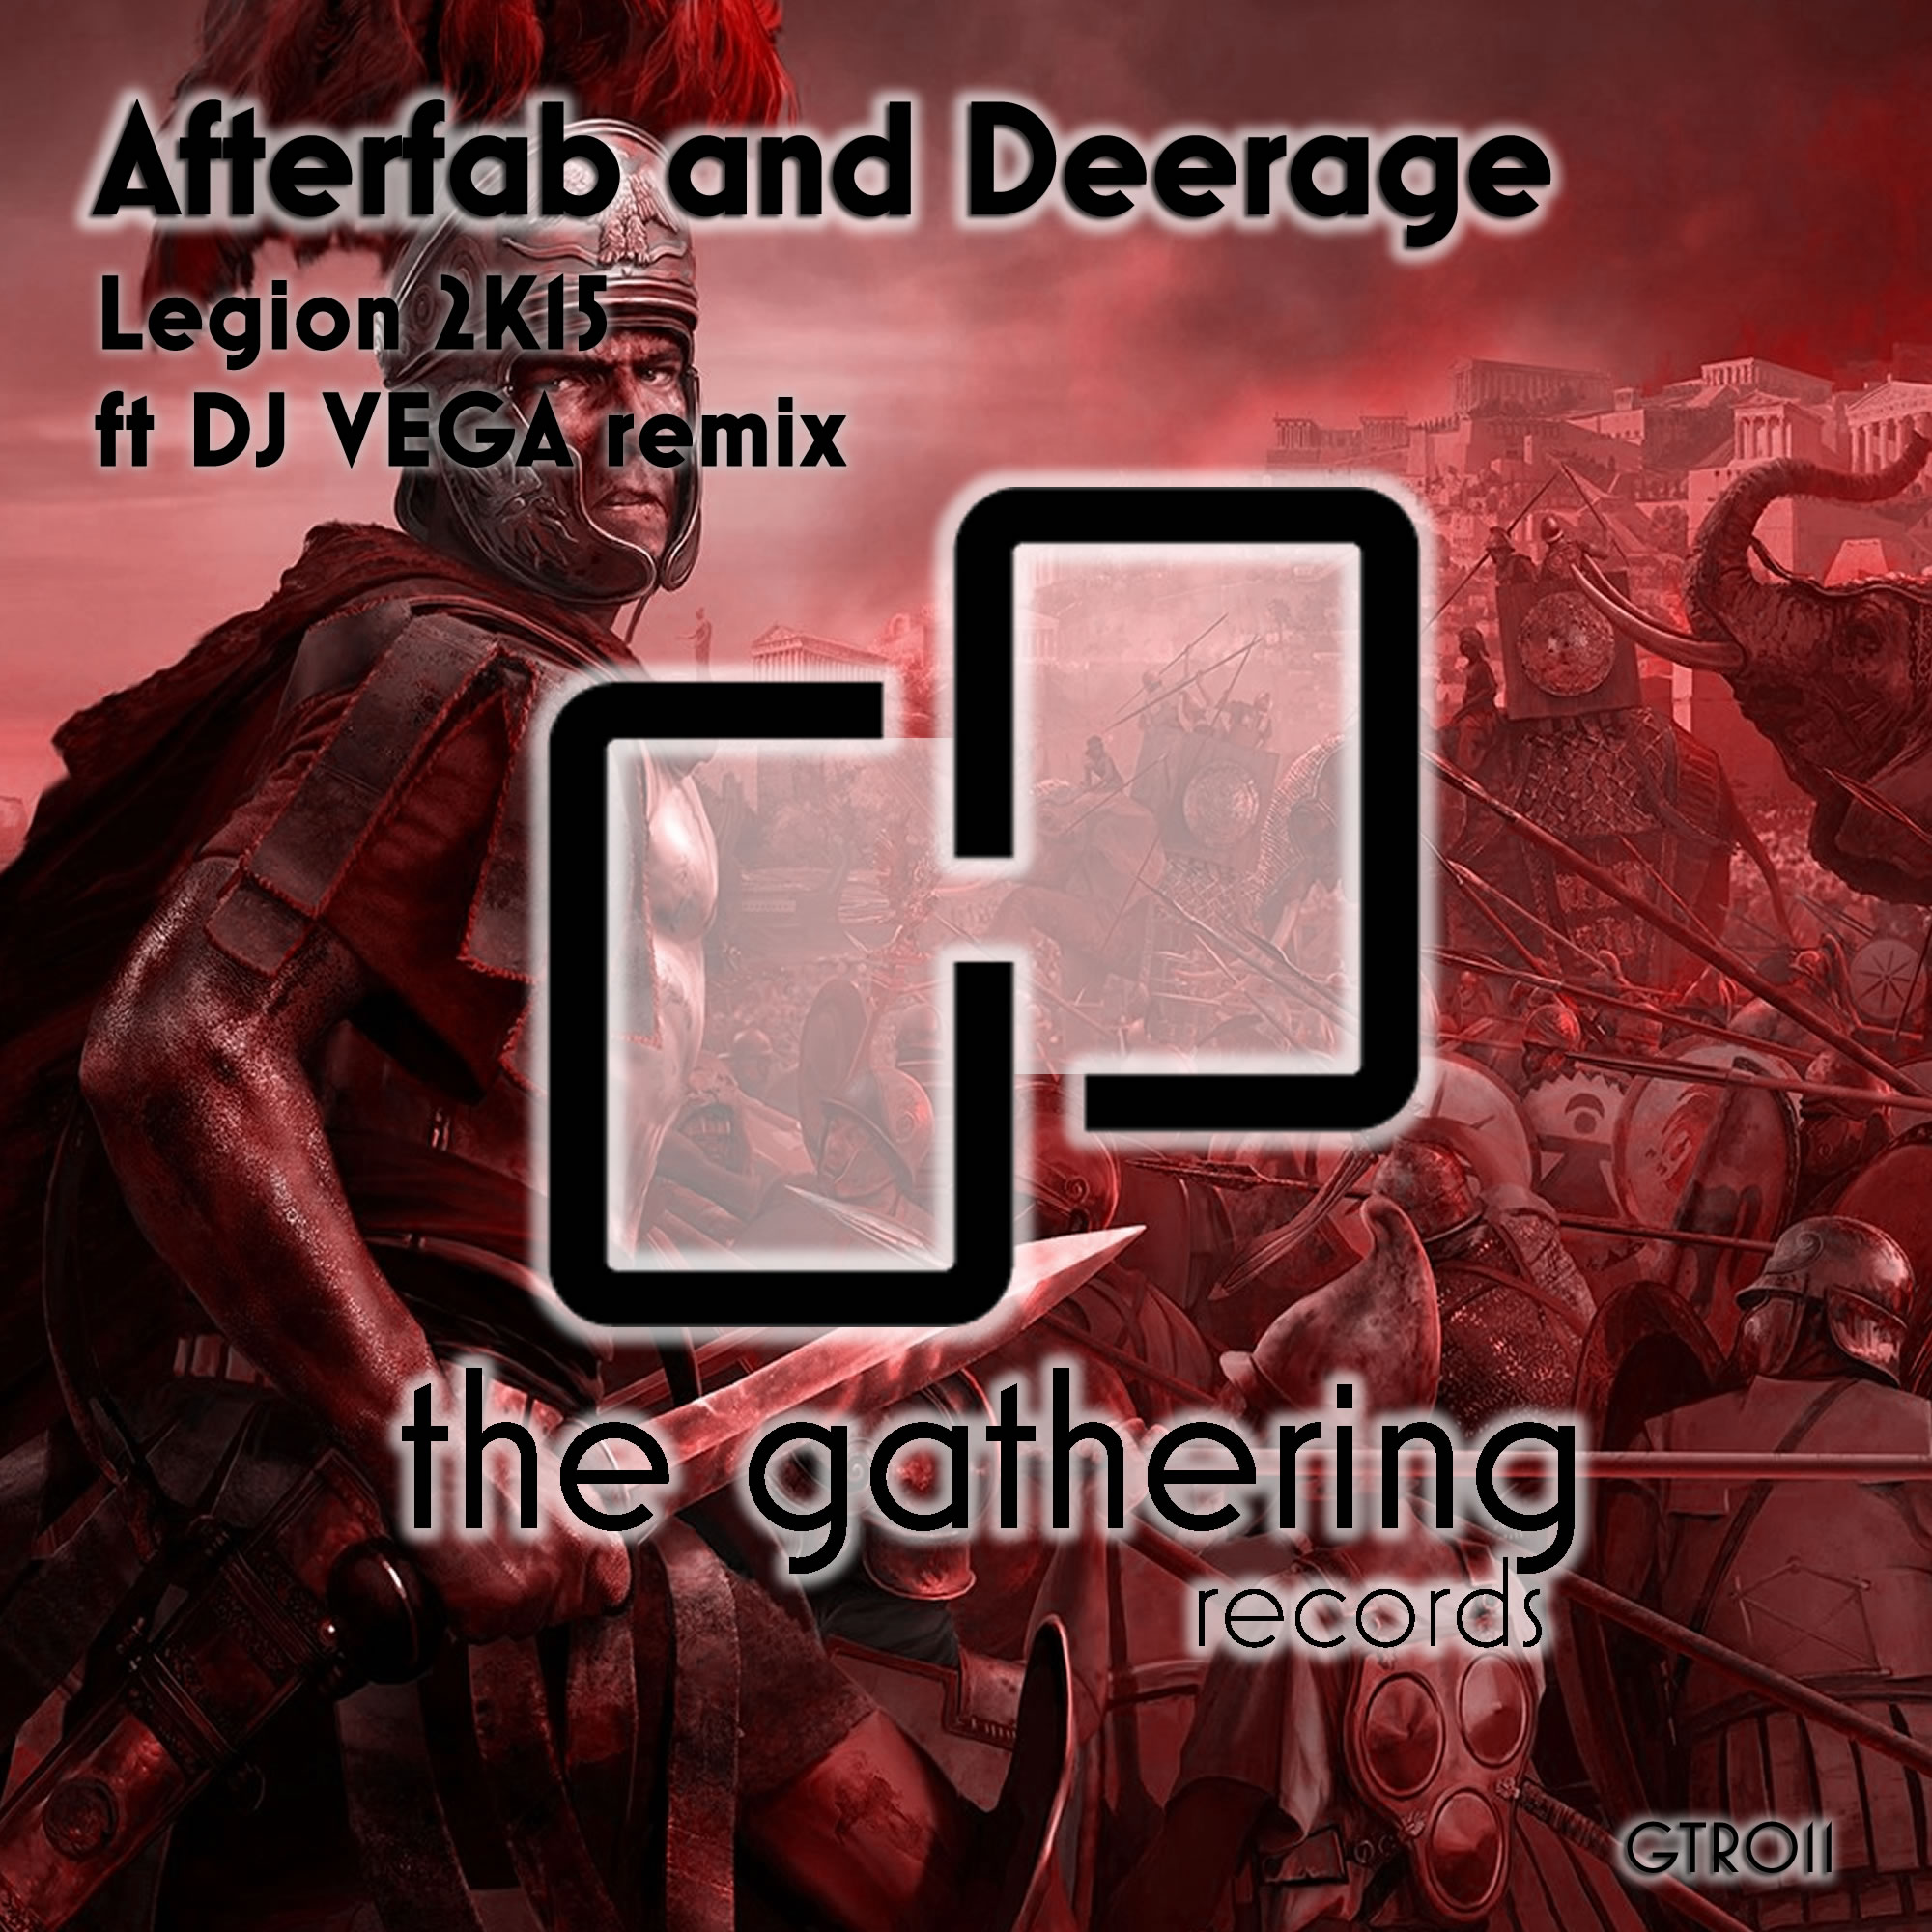 Afterfab & DJ Deerage – Legion (DJ Vega remix) (The Gathering Records)